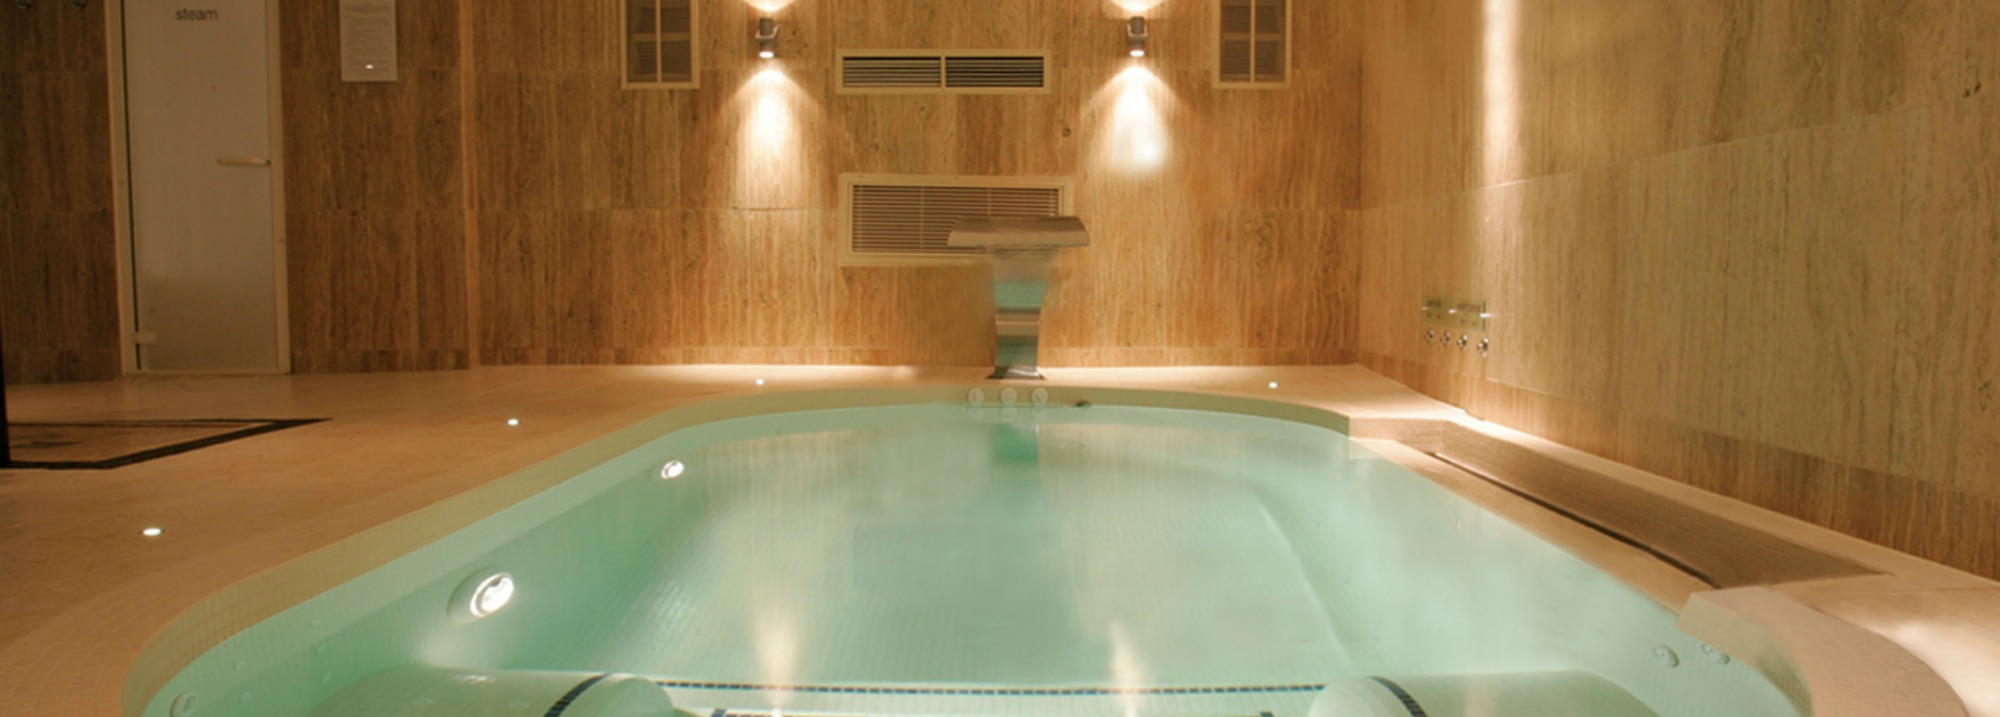 Devon Luxury Spa Aspara Royal York Faulkner Hotel Sidmouth